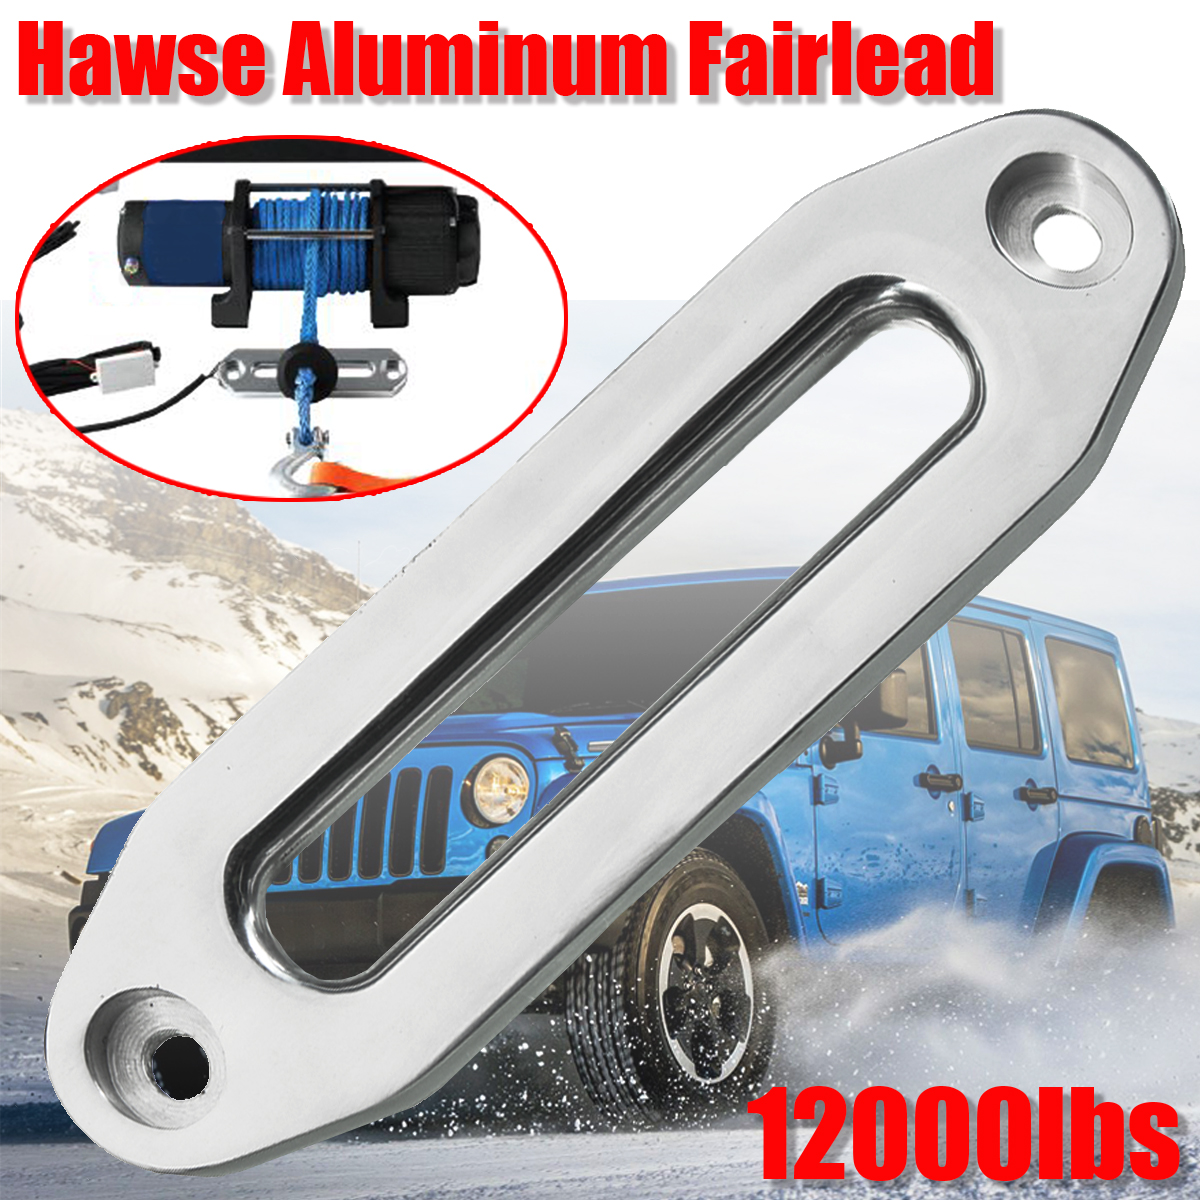 12000 Lbs Winch Rope Guide Silver Hawse Aluminum Fairlead For Off Road 4WD